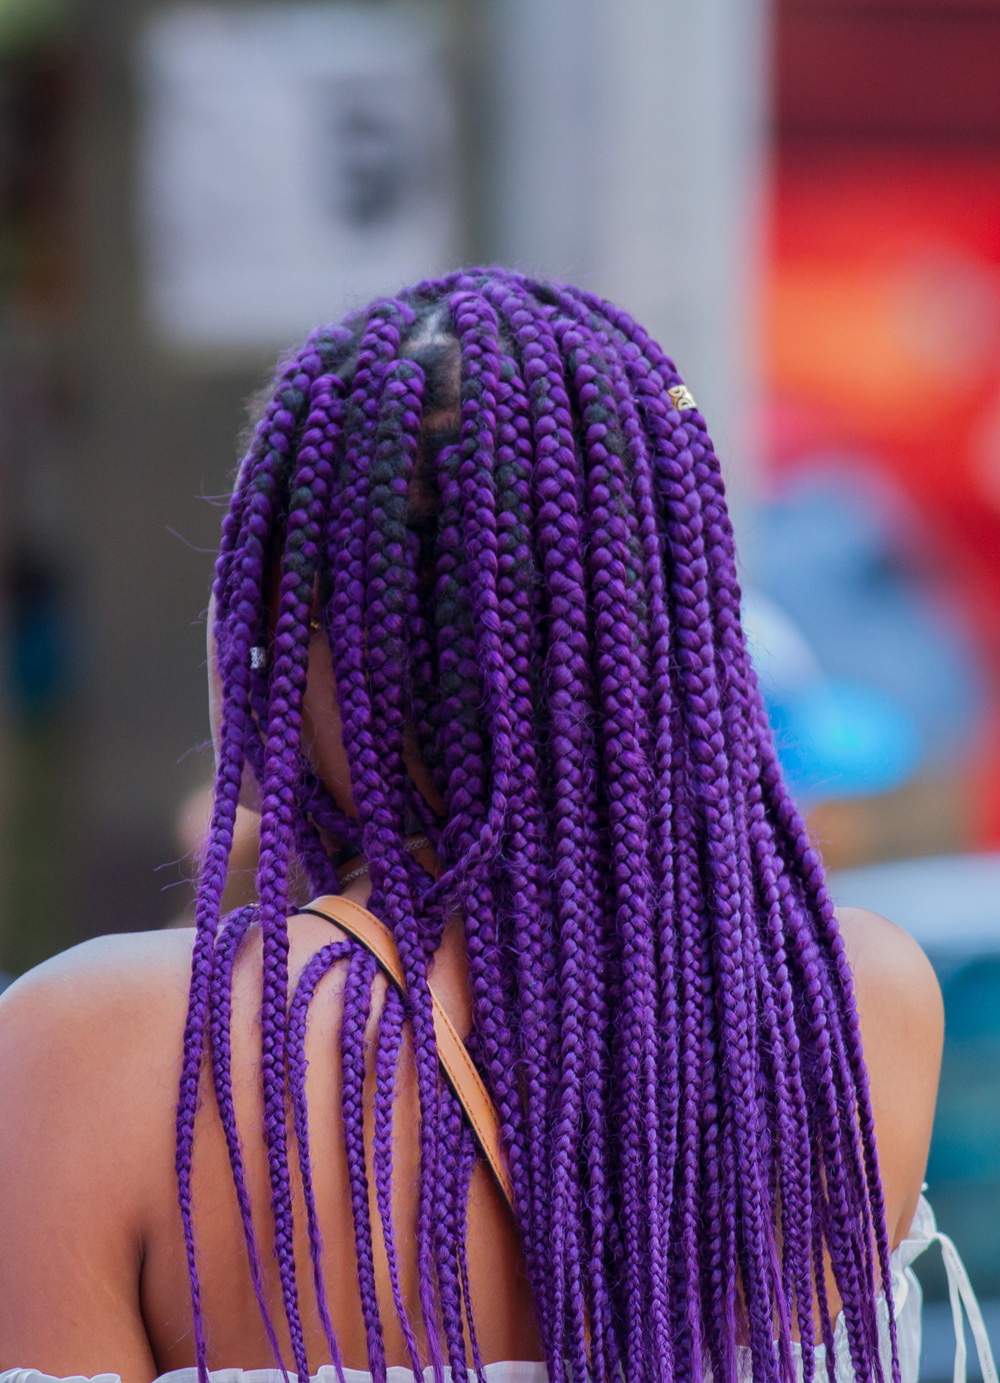 colorful real-life photo of a beautiful wife with purple hairs photographed from behind